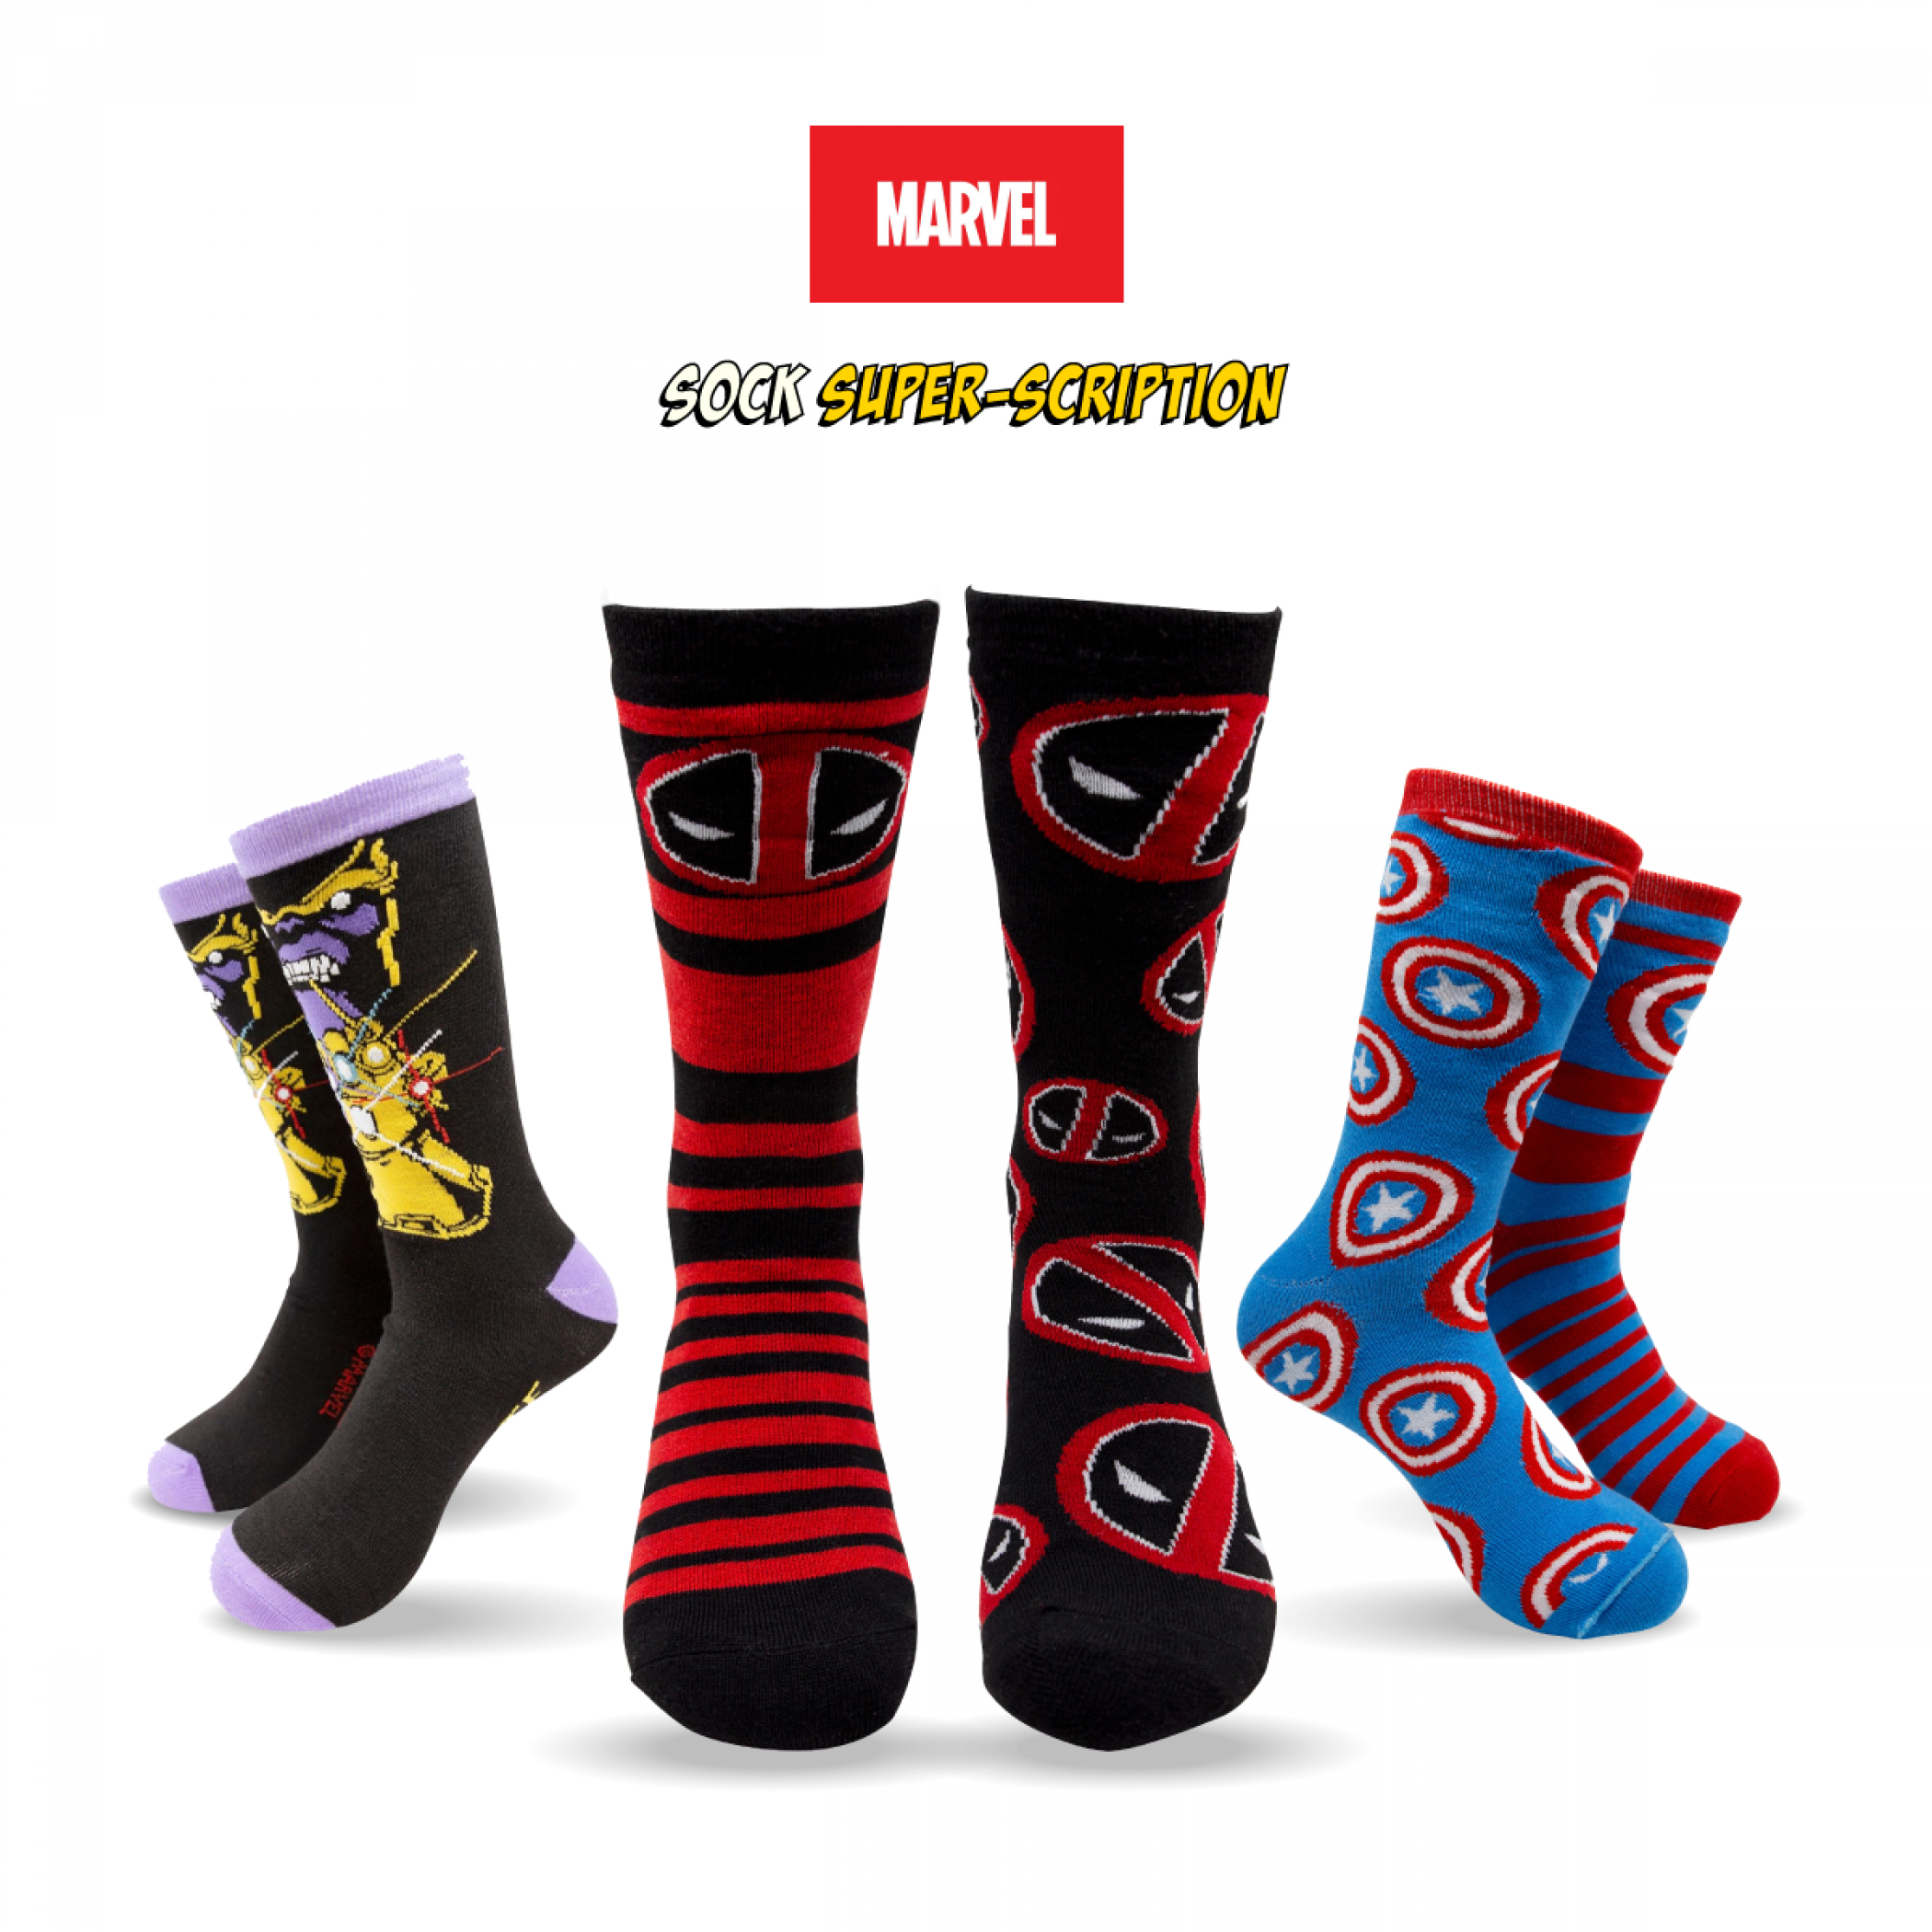 Marvel Sock Super-Scription